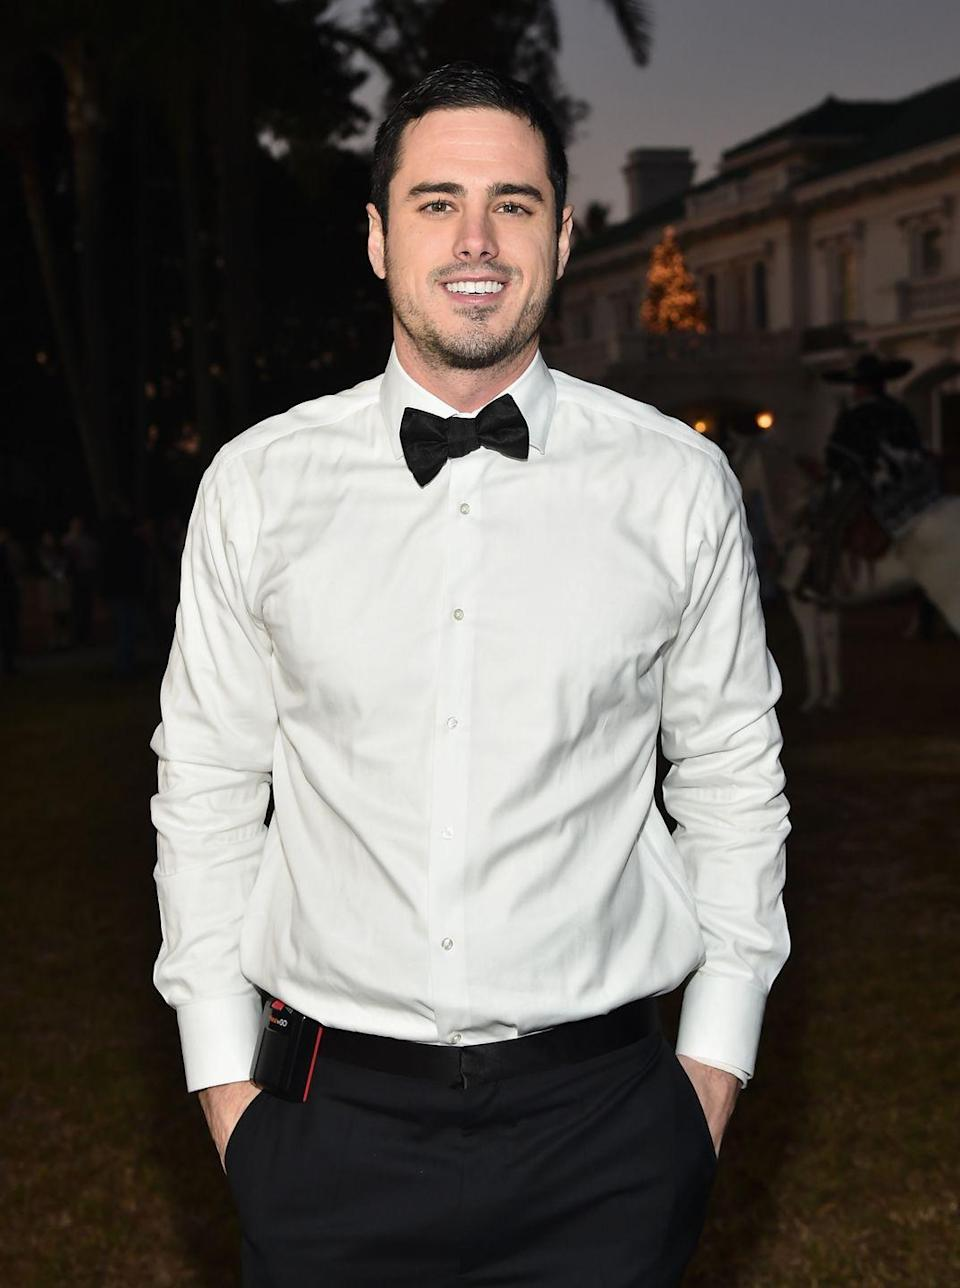 """<p><em>The Bachelor</em> <a href=""""https://www.huffpost.com/entry/bachelor-ben-higgins-short-lived-political-career-a-timeline_n_579264b4e4b01180b52ee0fb"""" data-ylk=""""slk:reality TV star"""" class=""""link rapid-noclick-resp"""">reality TV star</a> planned to run for a seat in Colorado's House of Representatives back in 2016. However, the day after he filed his campaign paperwork, he backed out. """"Due to unforeseen circumstances, I will not be able to move forward as a candidate,"""" <a href=""""http://ew.com/article/2016/06/02/bachelor-ben-higgins-colorado-political-run/"""" rel=""""nofollow noopener"""" target=""""_blank"""" data-ylk=""""slk:Higgins said in an official statement"""" class=""""link rapid-noclick-resp"""">Higgins said in an official statement</a>. """"I find solace in knowing that our intentions and actions have been fair and sincere. I entered into this endeavor wanting to bring positive change to my community, and it is with that same spirit that I will move forward, albeit on a different path.""""</p>"""